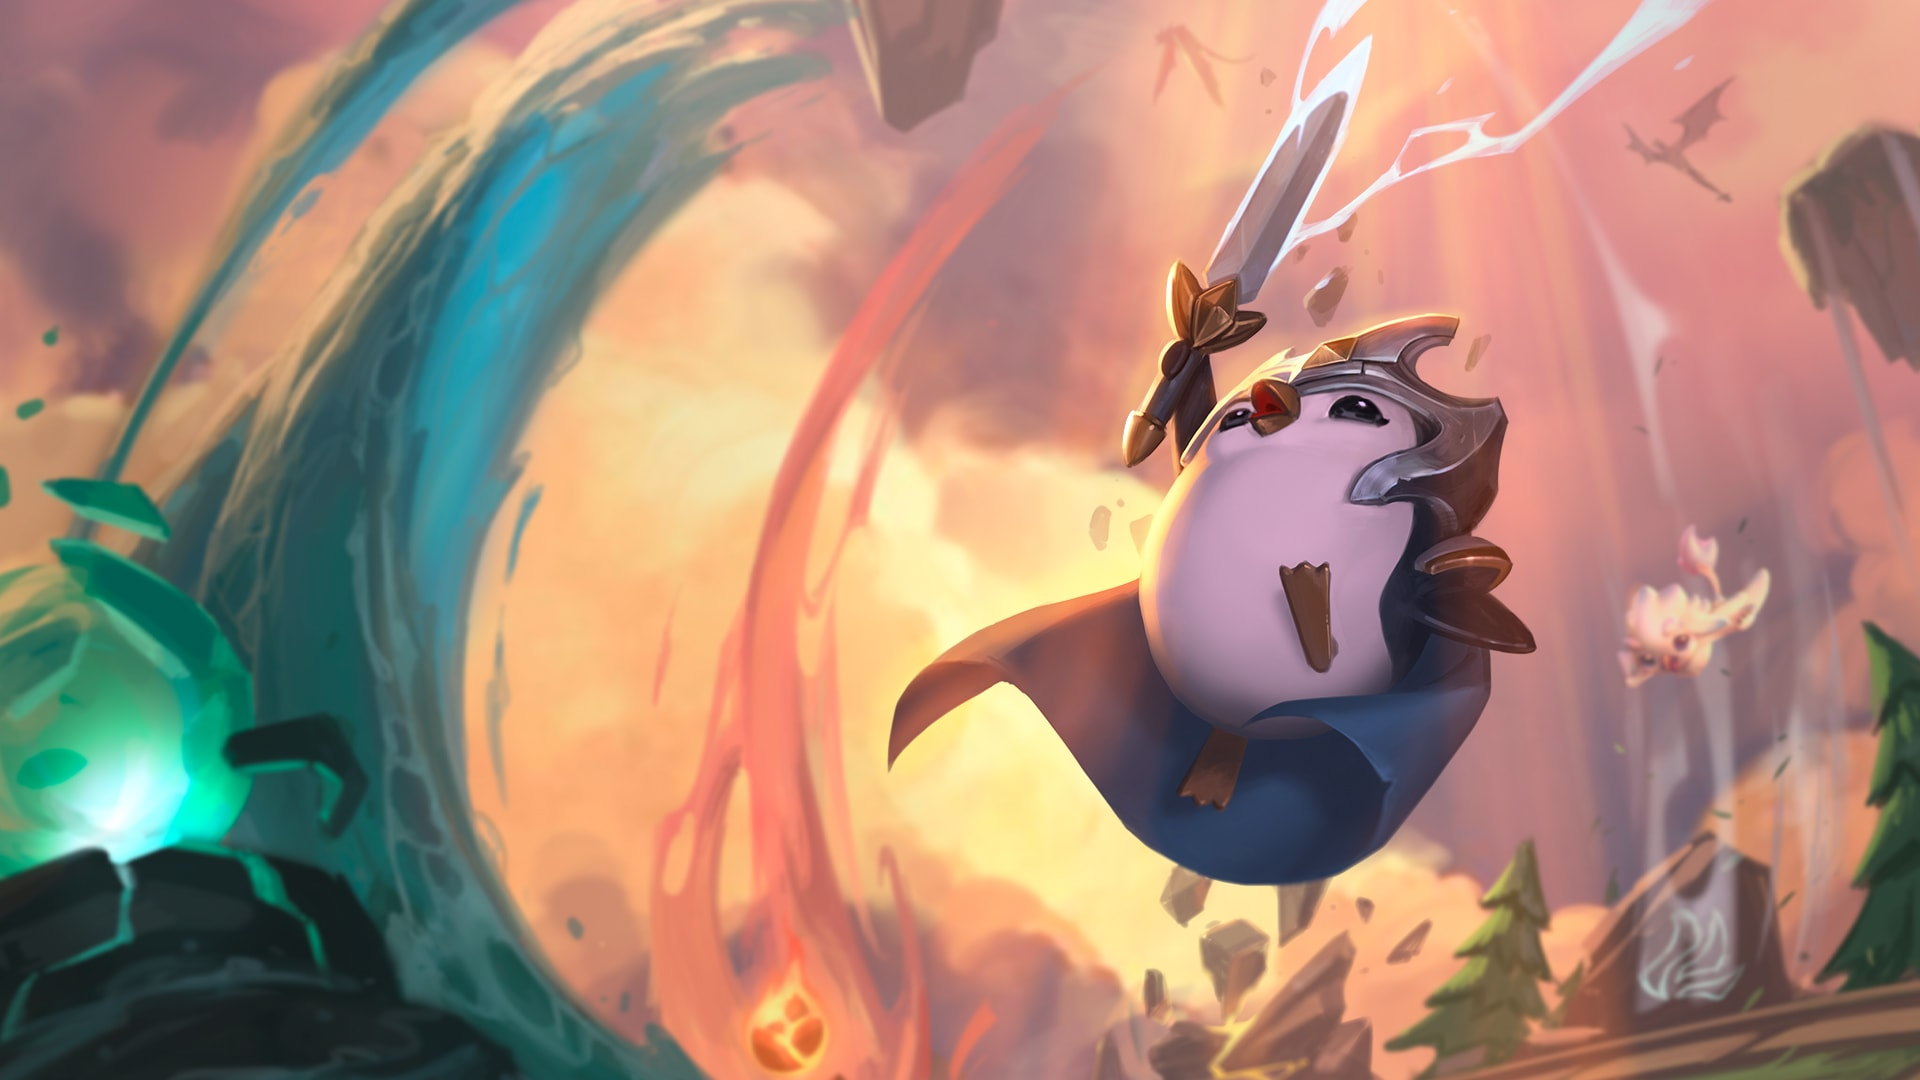 All the champs and traits removed in TFT's mid-set update